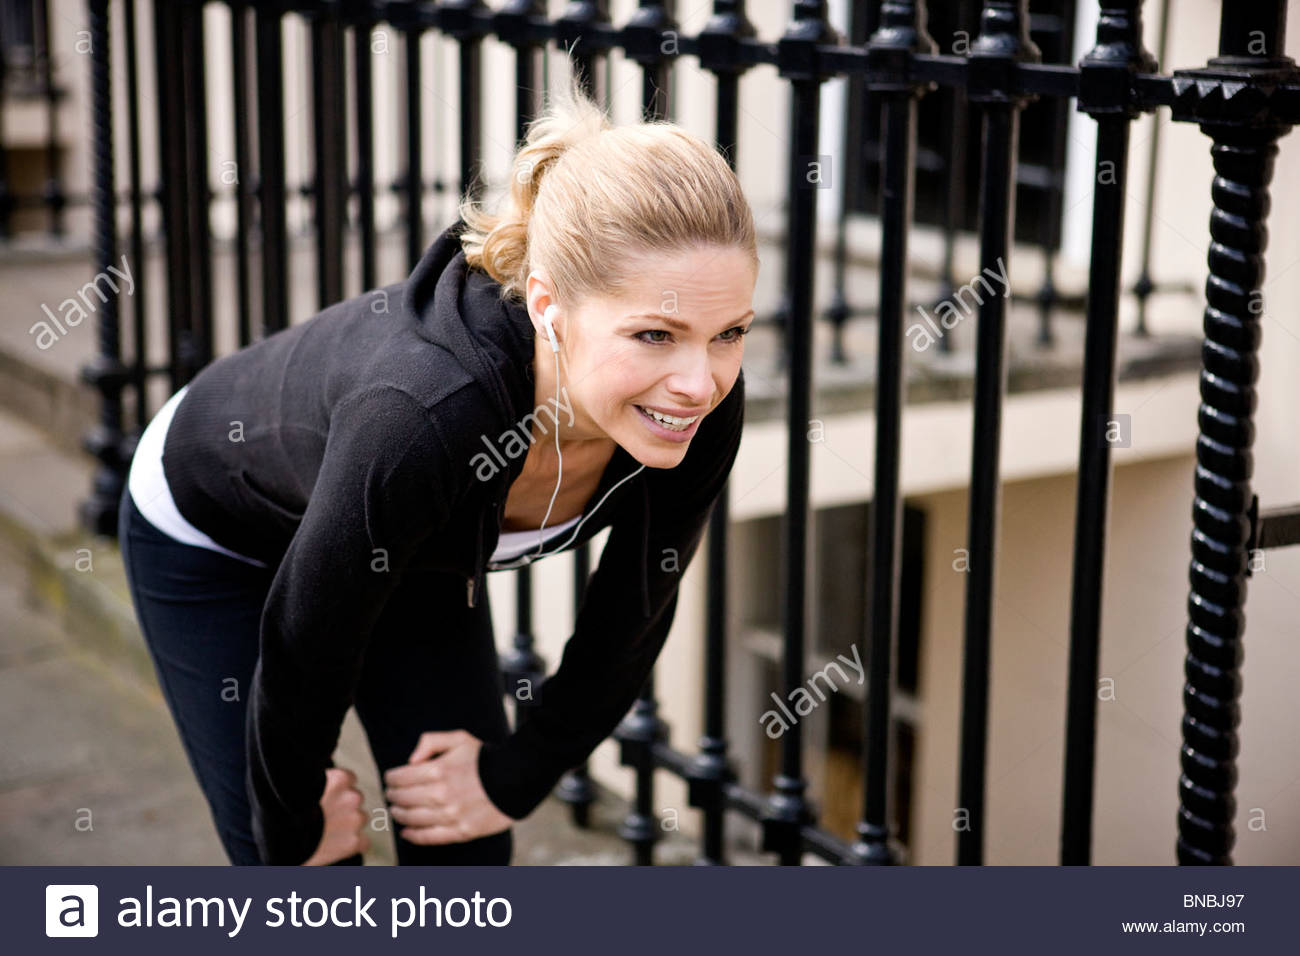 A female runner recovering, wearing headphones - Stock Image